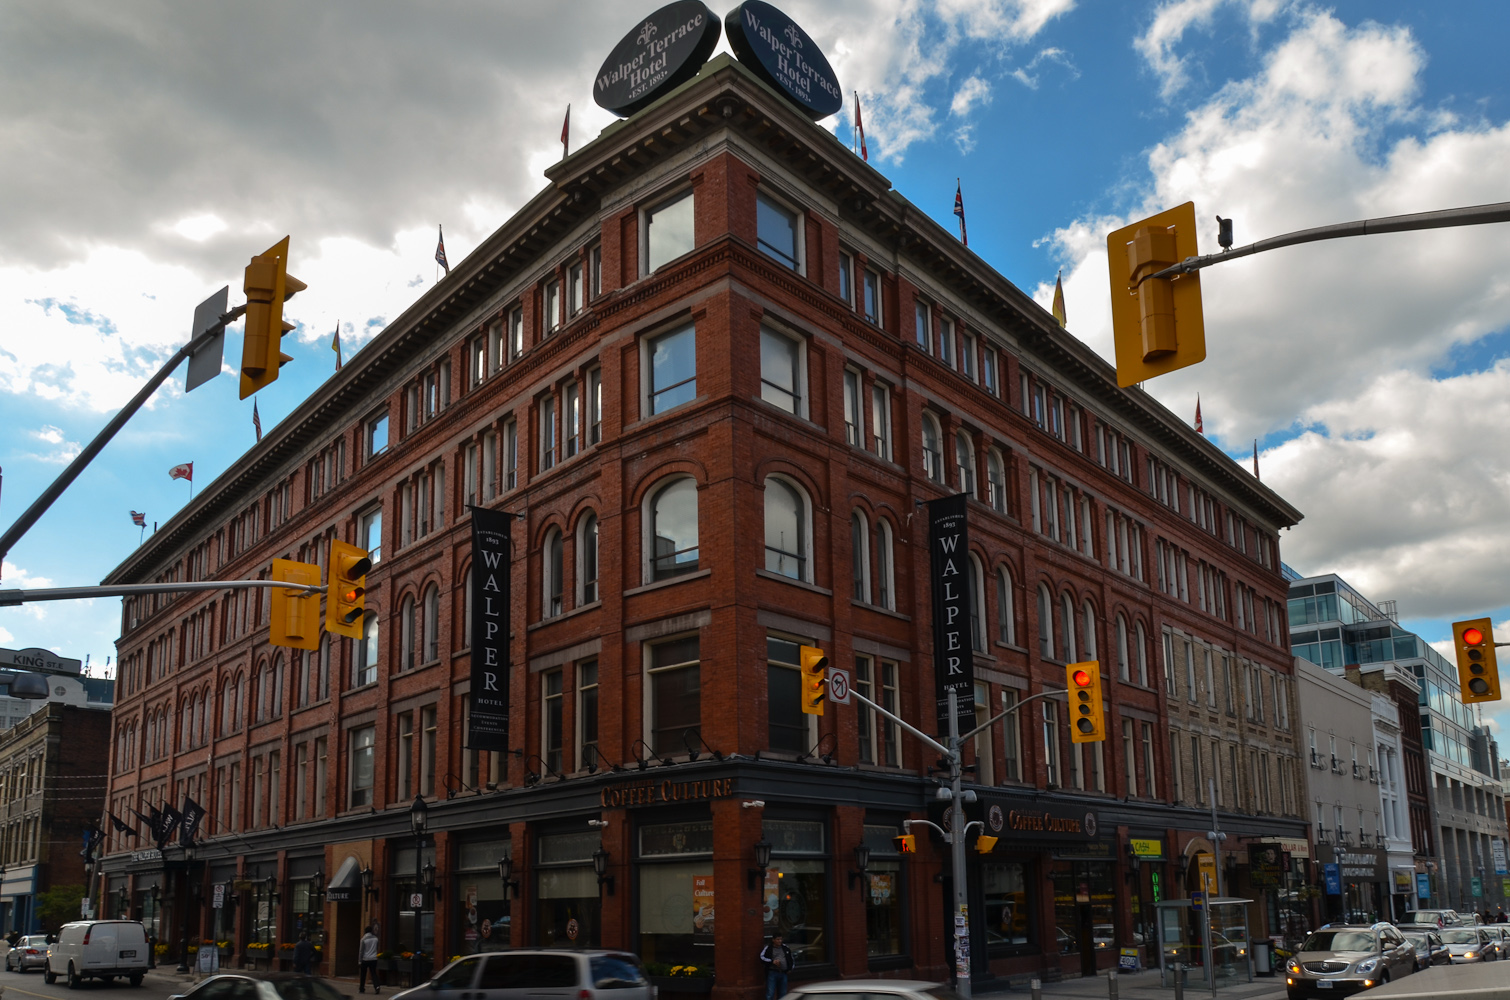 Filewalper Terrace Hotel In Kitchener, Ontariojpg